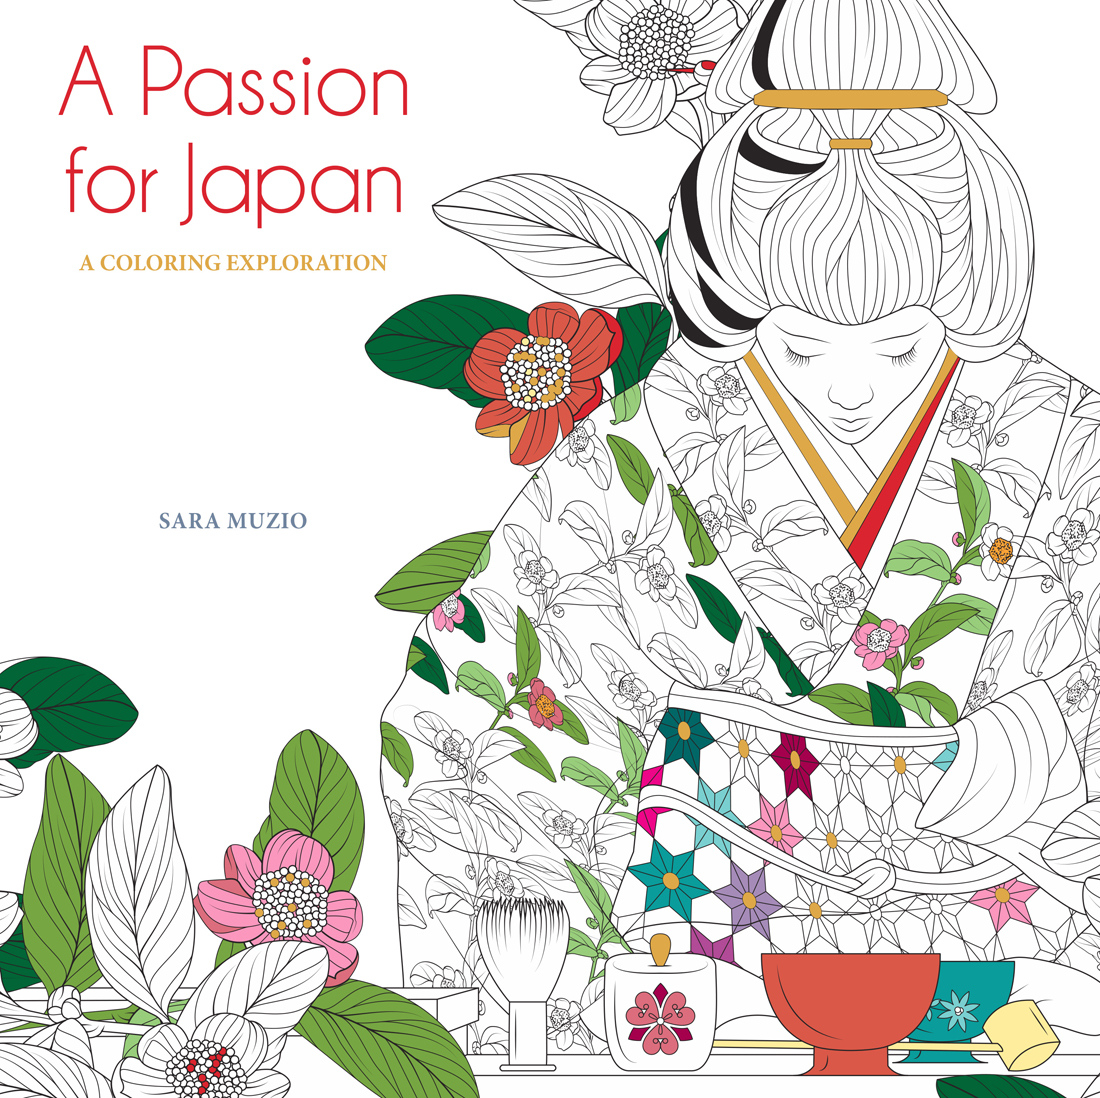 A Passion for Japan